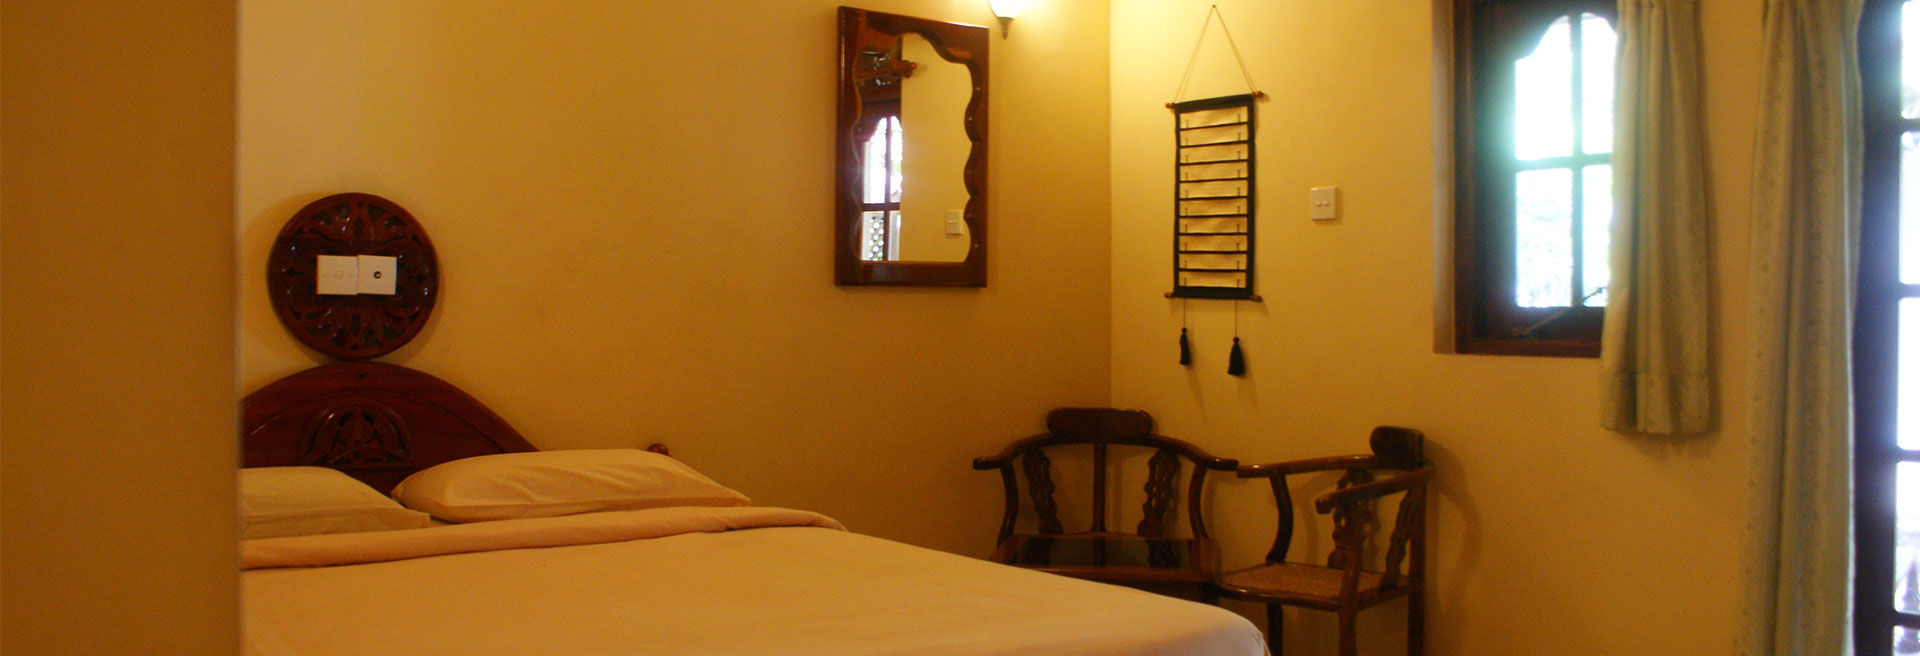 deluxe room at Deduwa boat house